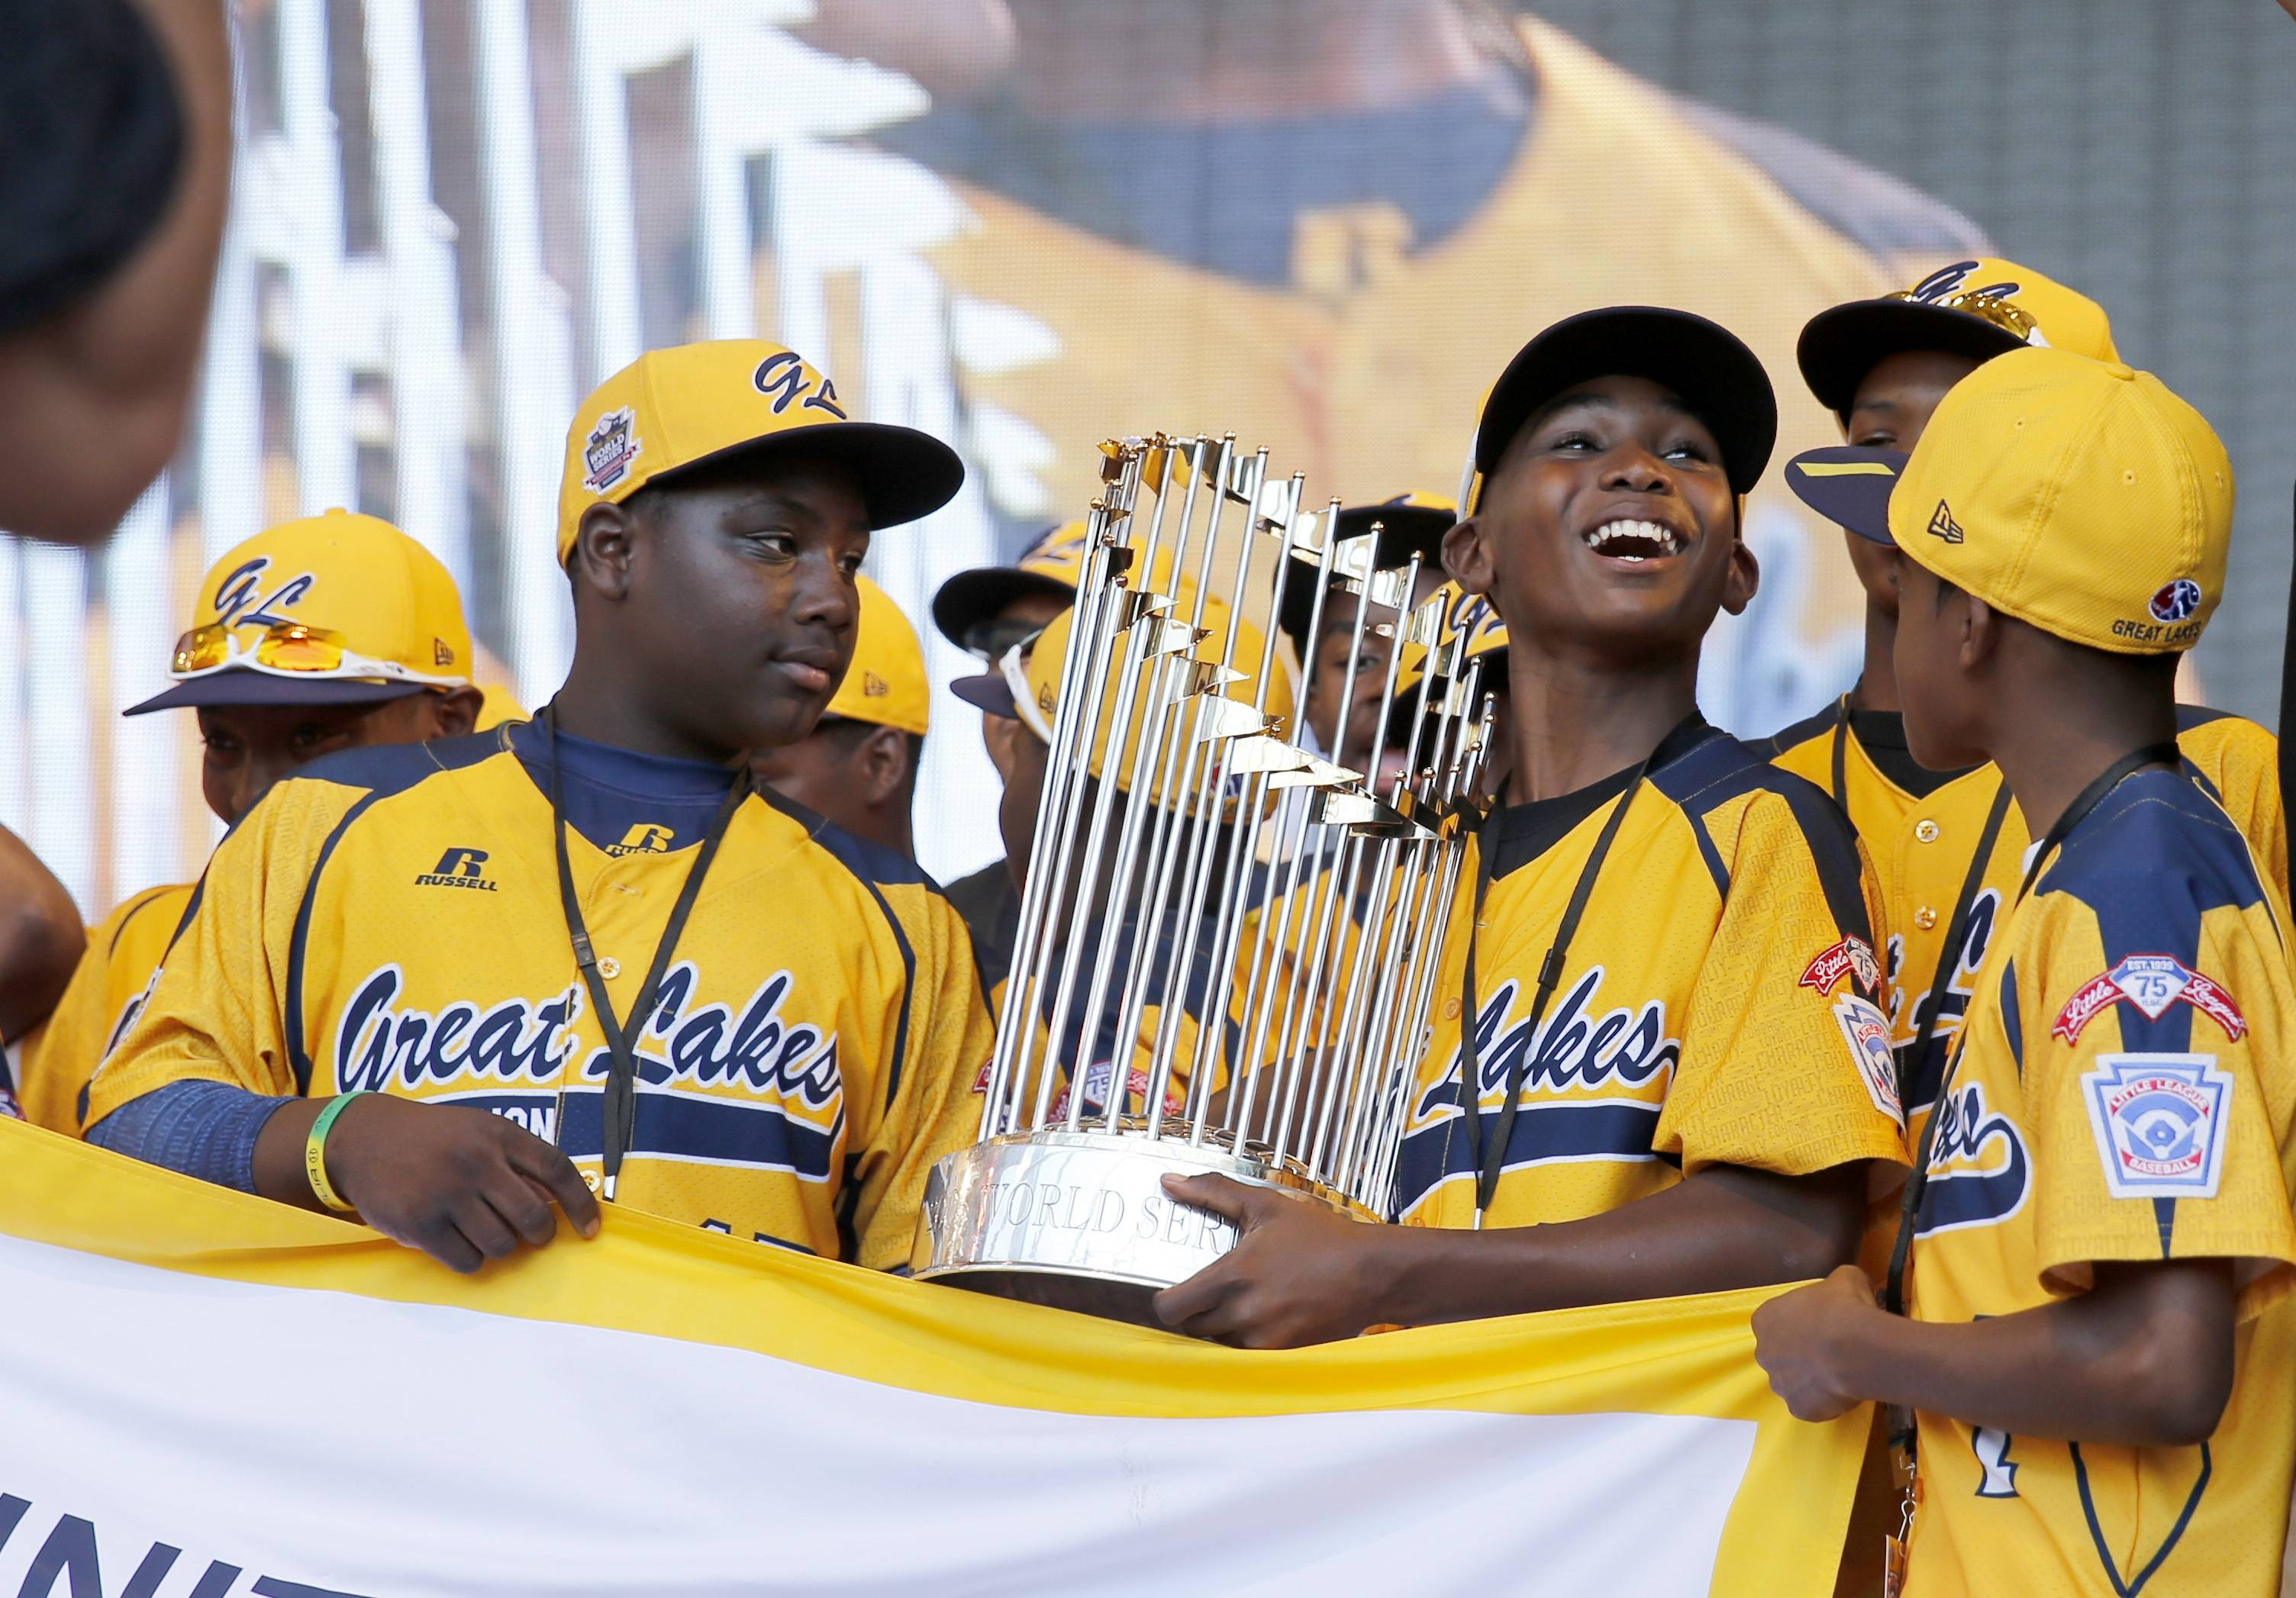 Members of the Jackie Robinson West All Stars Little League baseball team participate in a rally celebrating the team's U.S. Little League Championship Wednesday, Aug. 27, 2014, in Chicago.